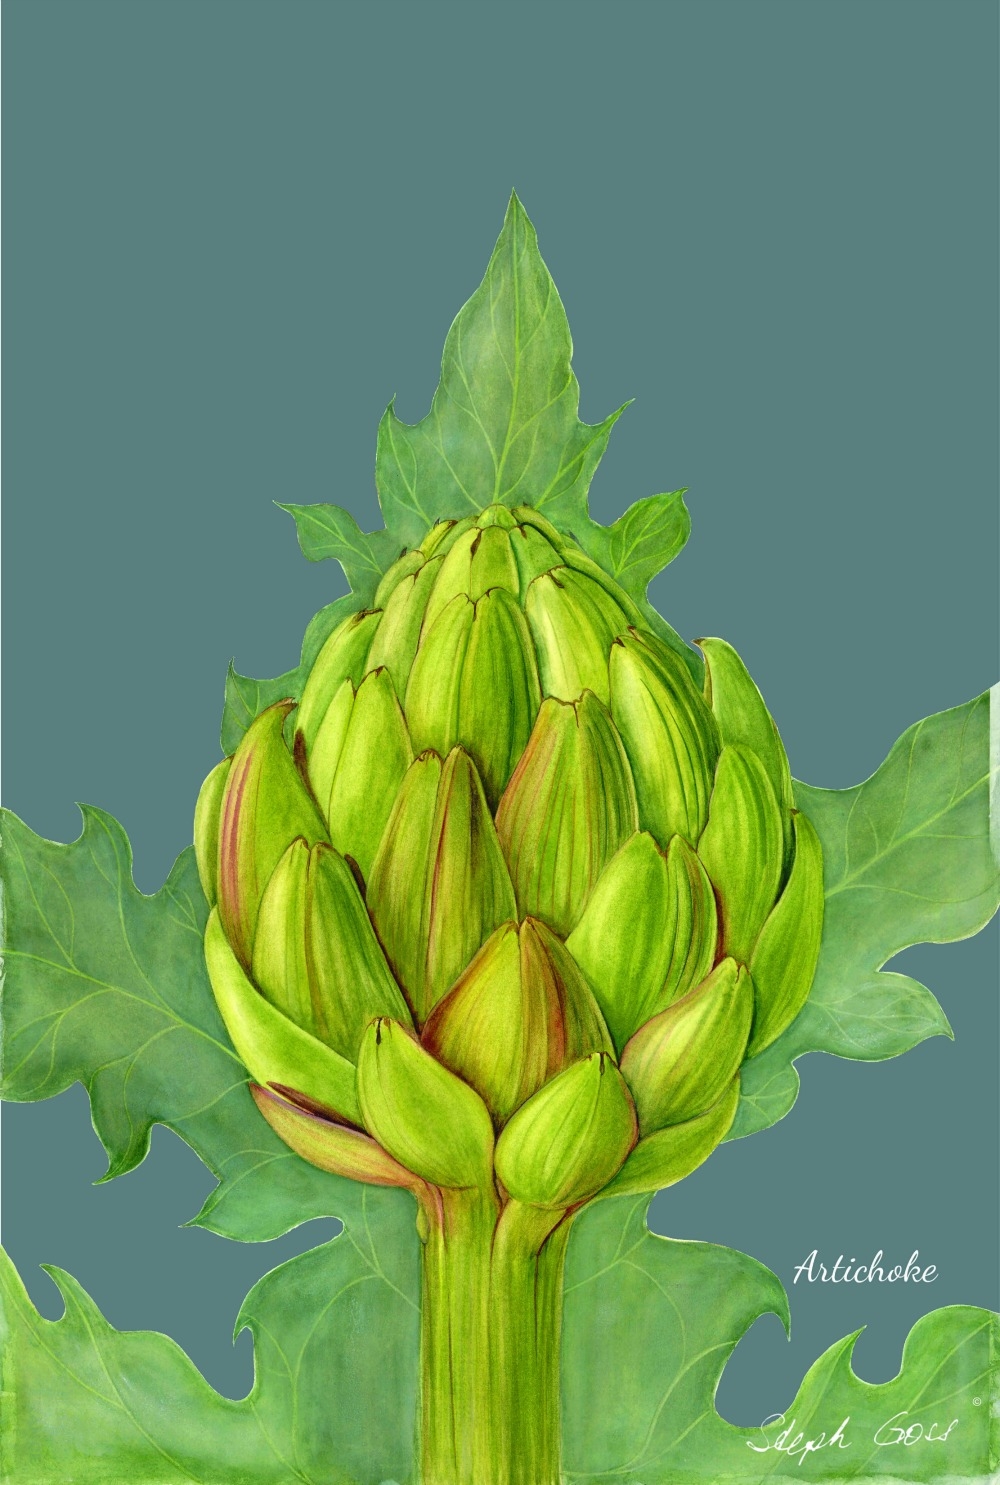 Artichoke on blue-grey